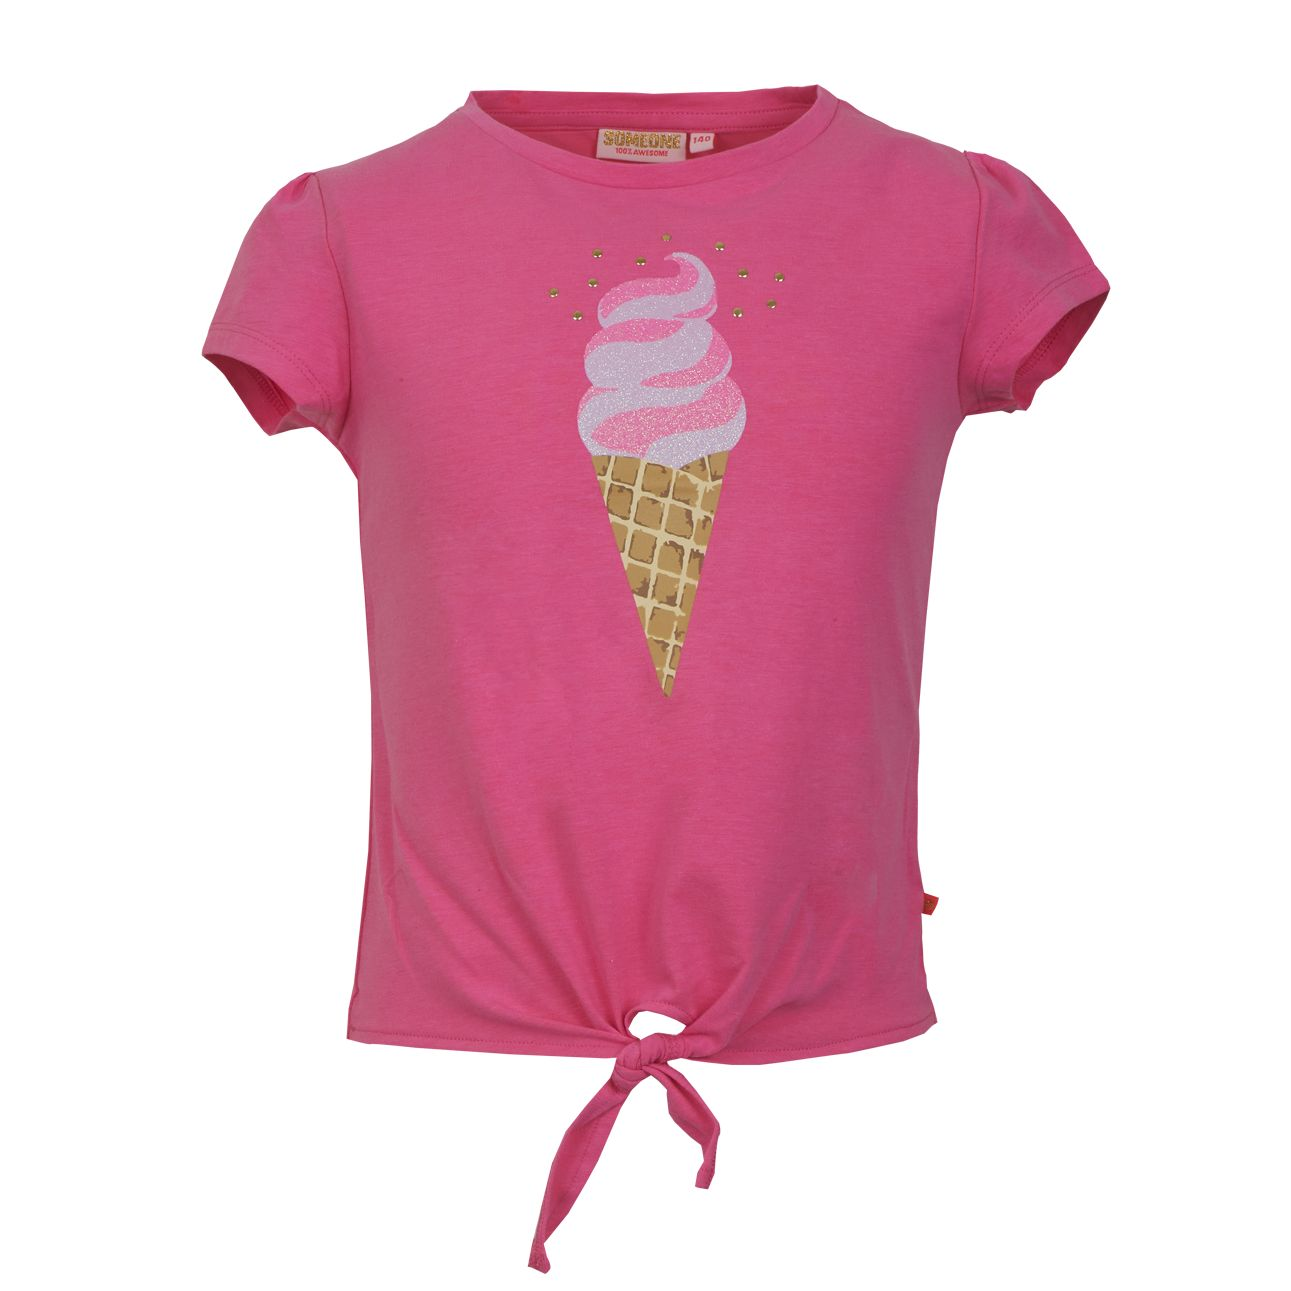 T-Shirt Eis 122 Pink SOMEONE 100% Awesome